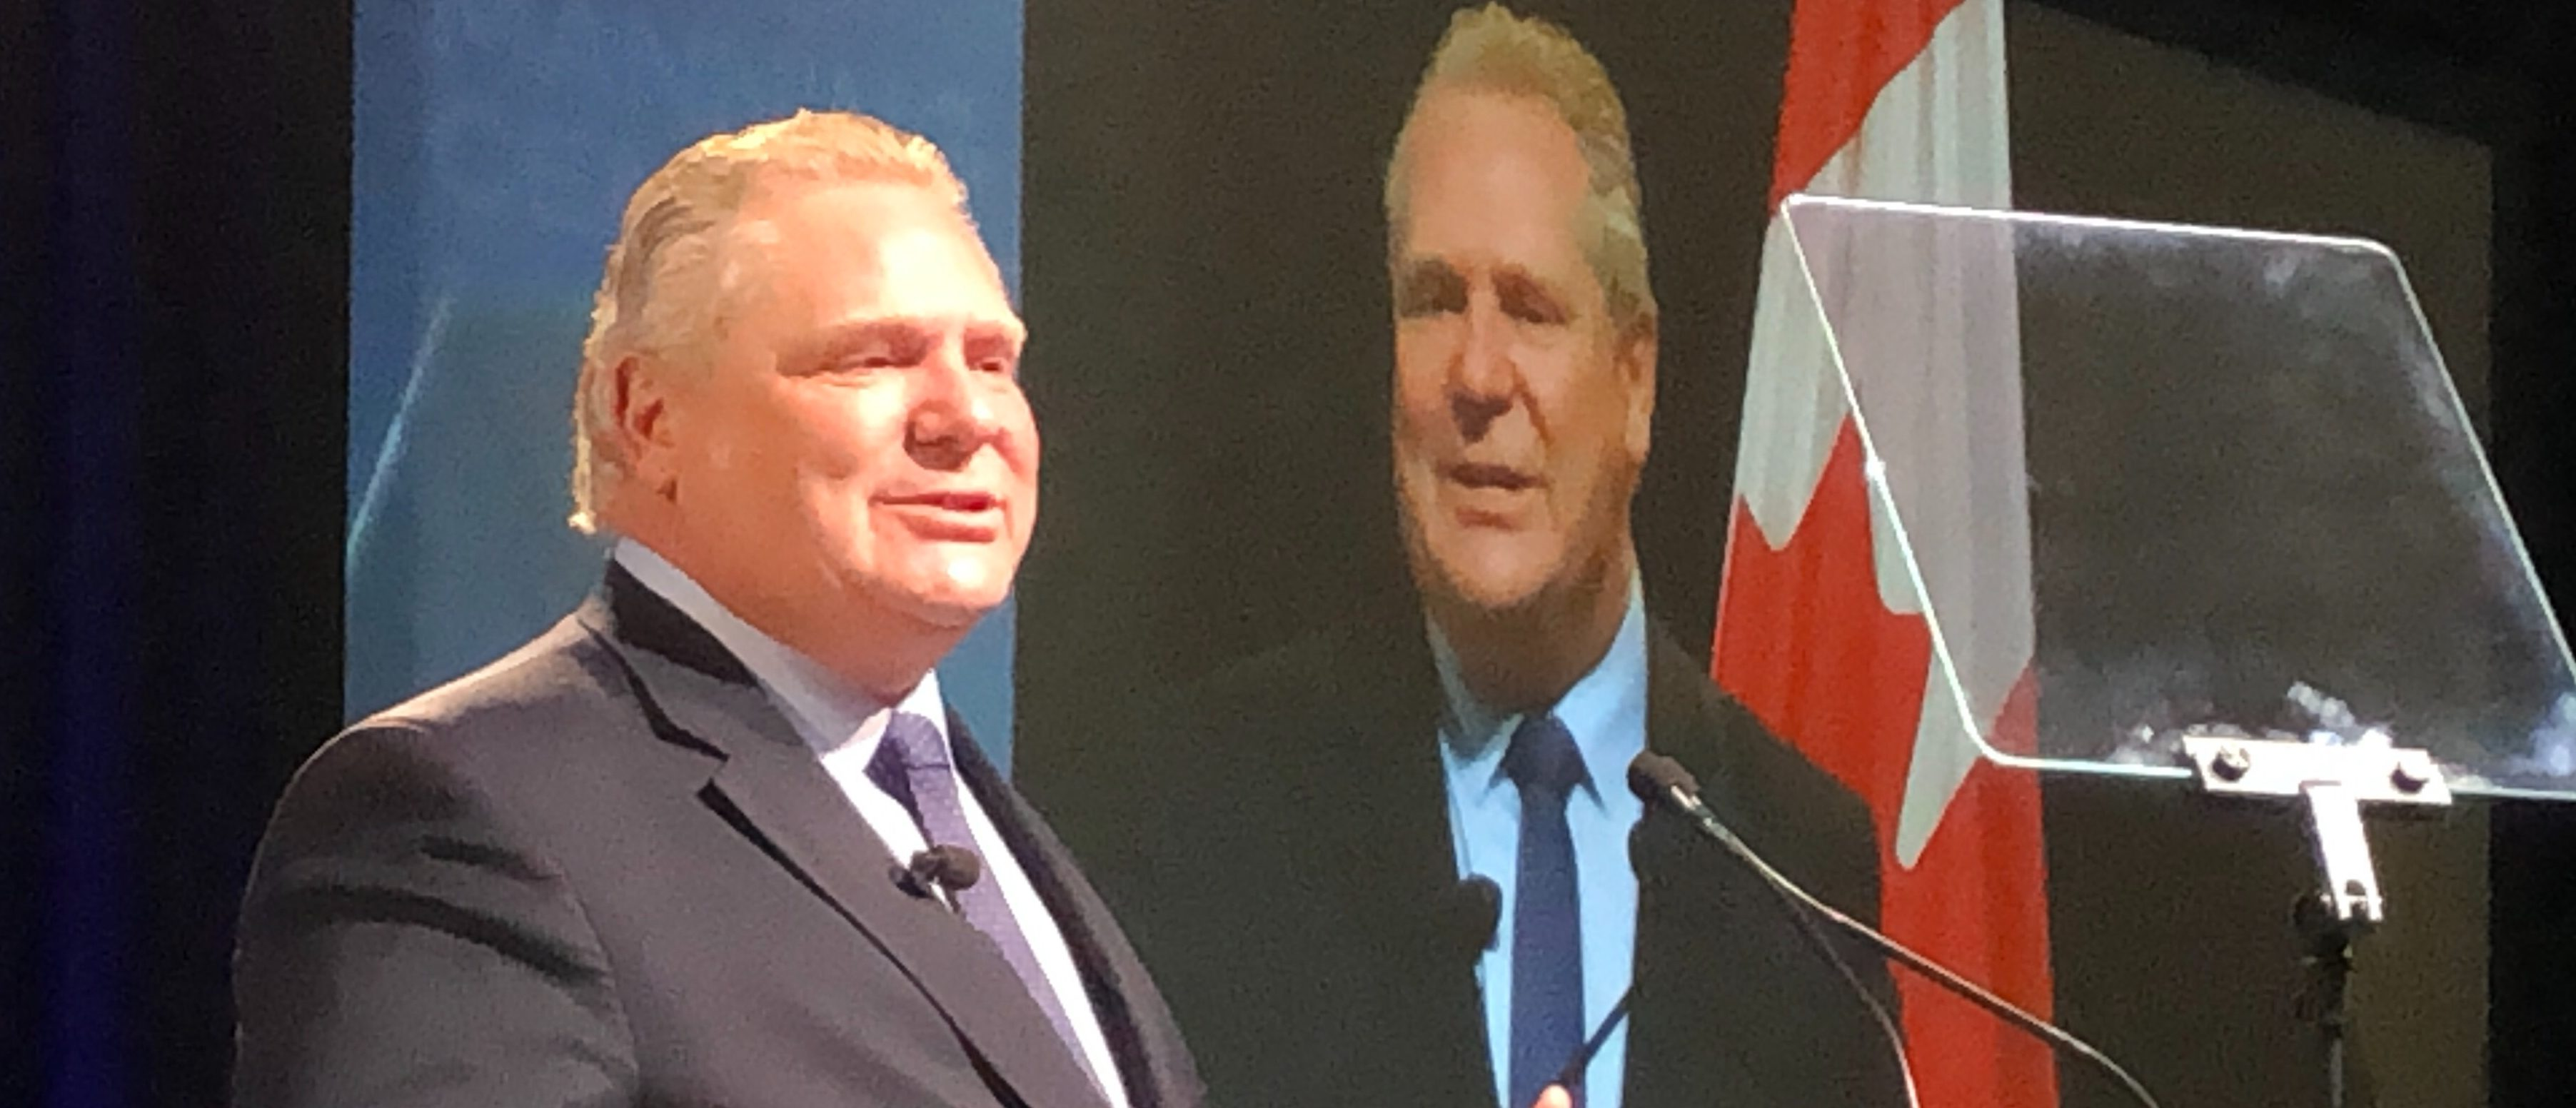 Ontario Premier Doug Ford addresses the 2019 Manning Networking Conference in Ottawa, Canada on March 23, 2019. Daily Caller photo by David Krayden